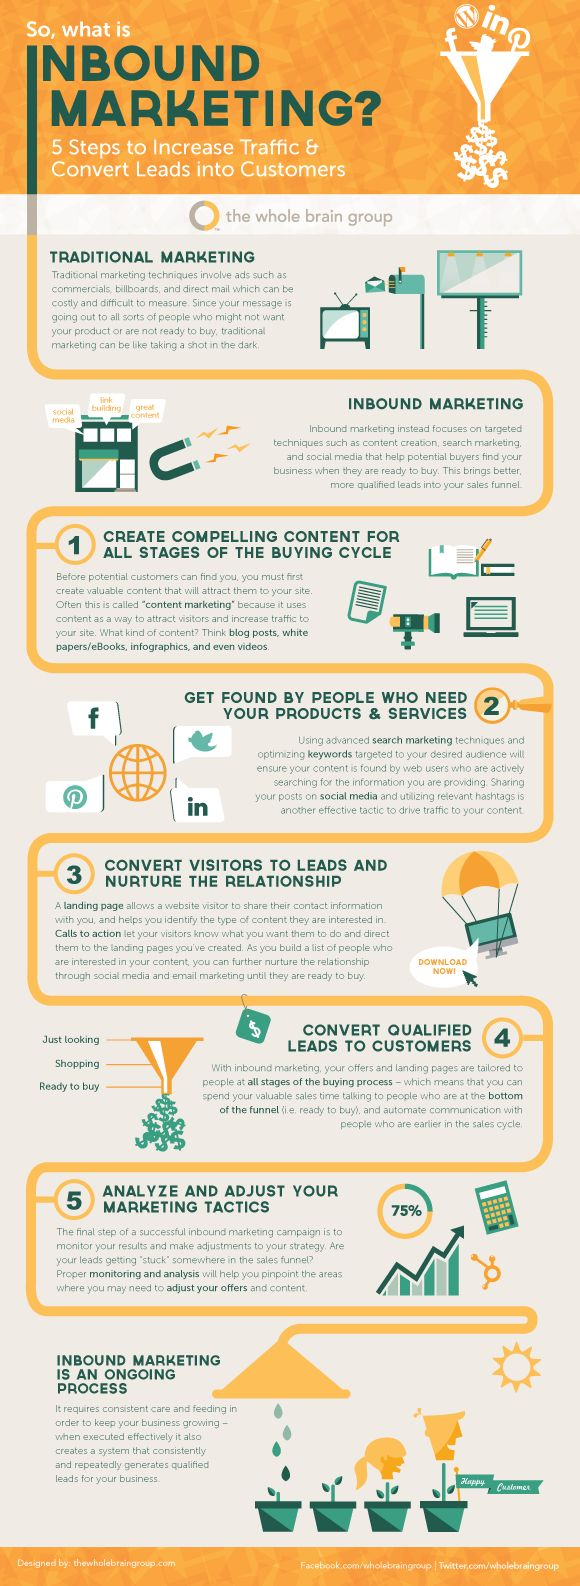 A Super Simple Explanation of Inbound Marketing #INFOGRAPHIC